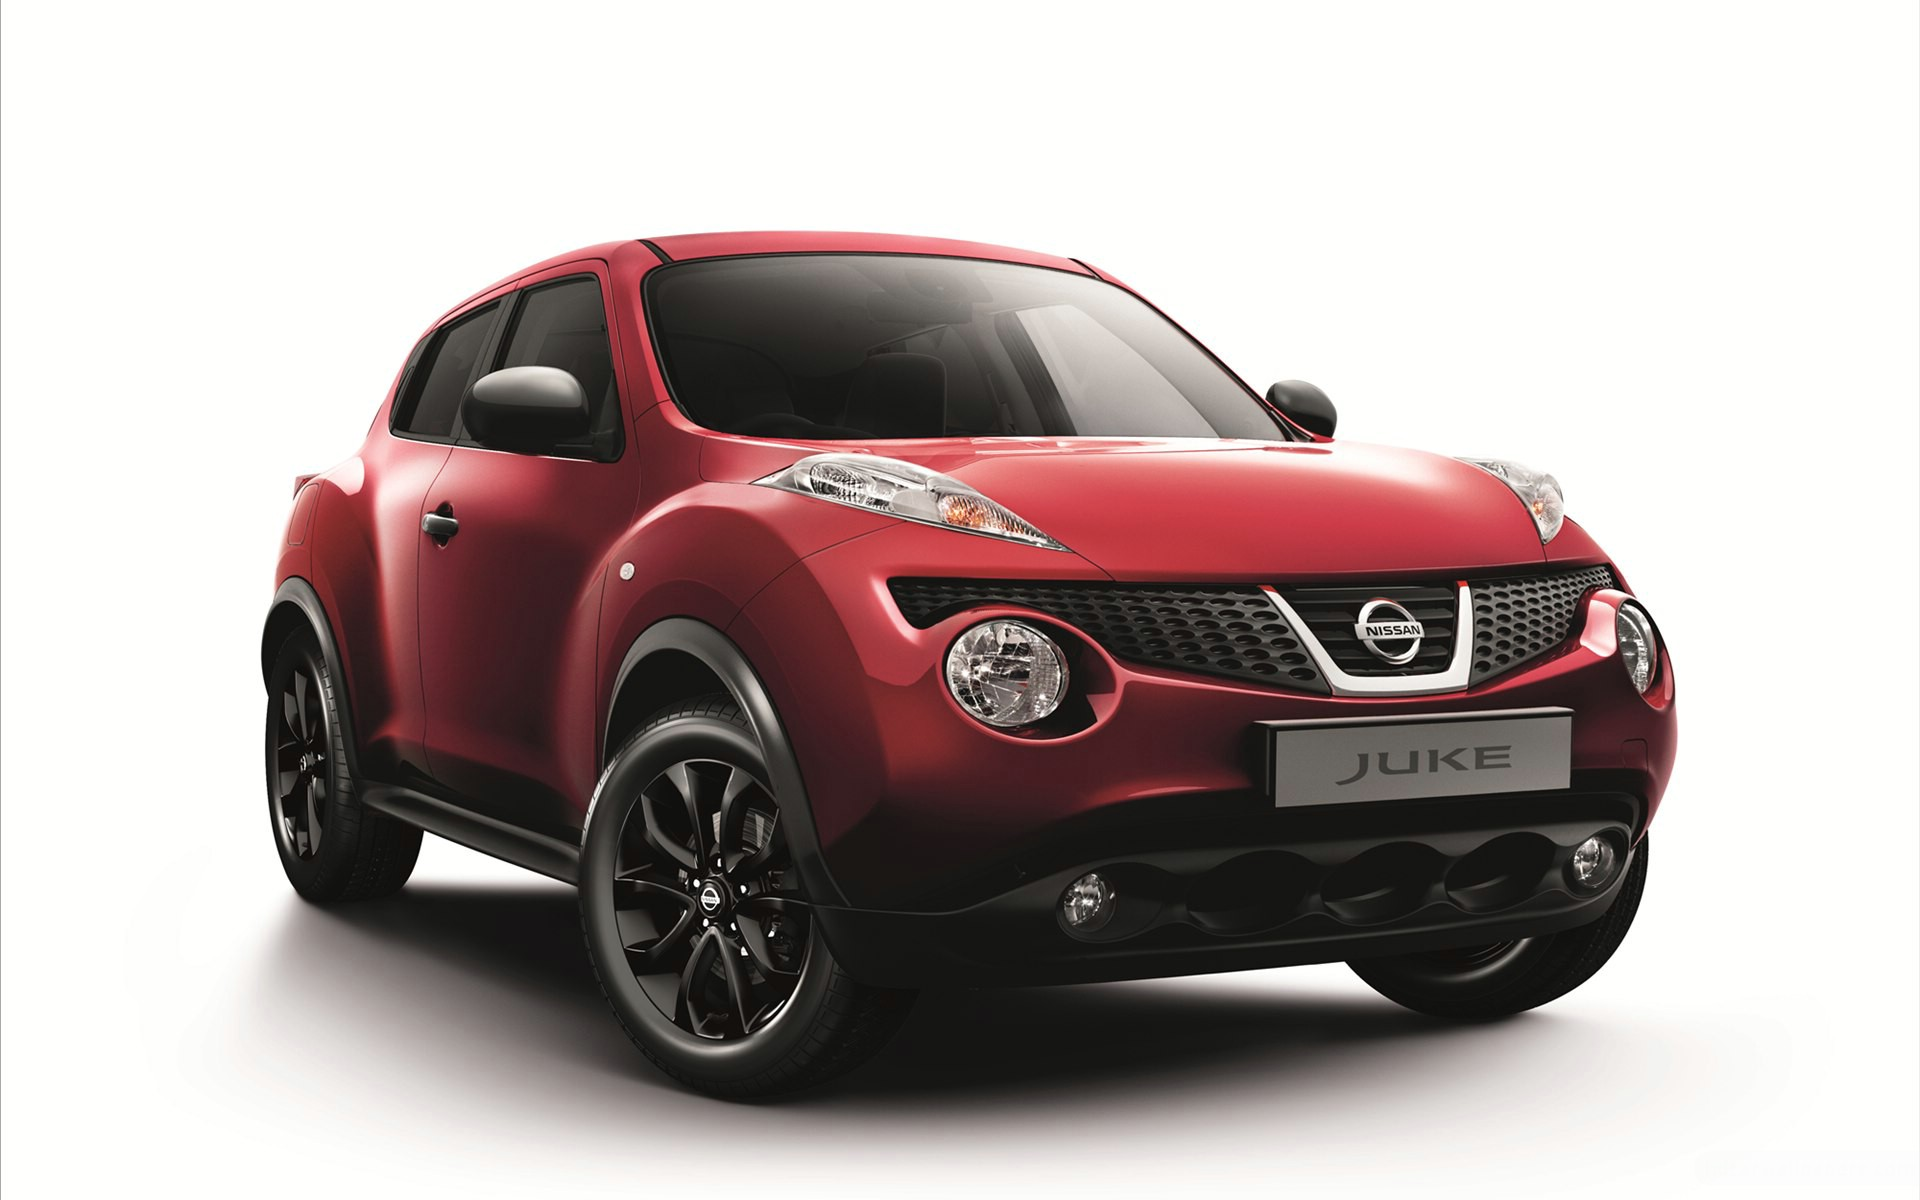 2012 nissan limited juke kuro wallpaper hd car wallpapers. Black Bedroom Furniture Sets. Home Design Ideas